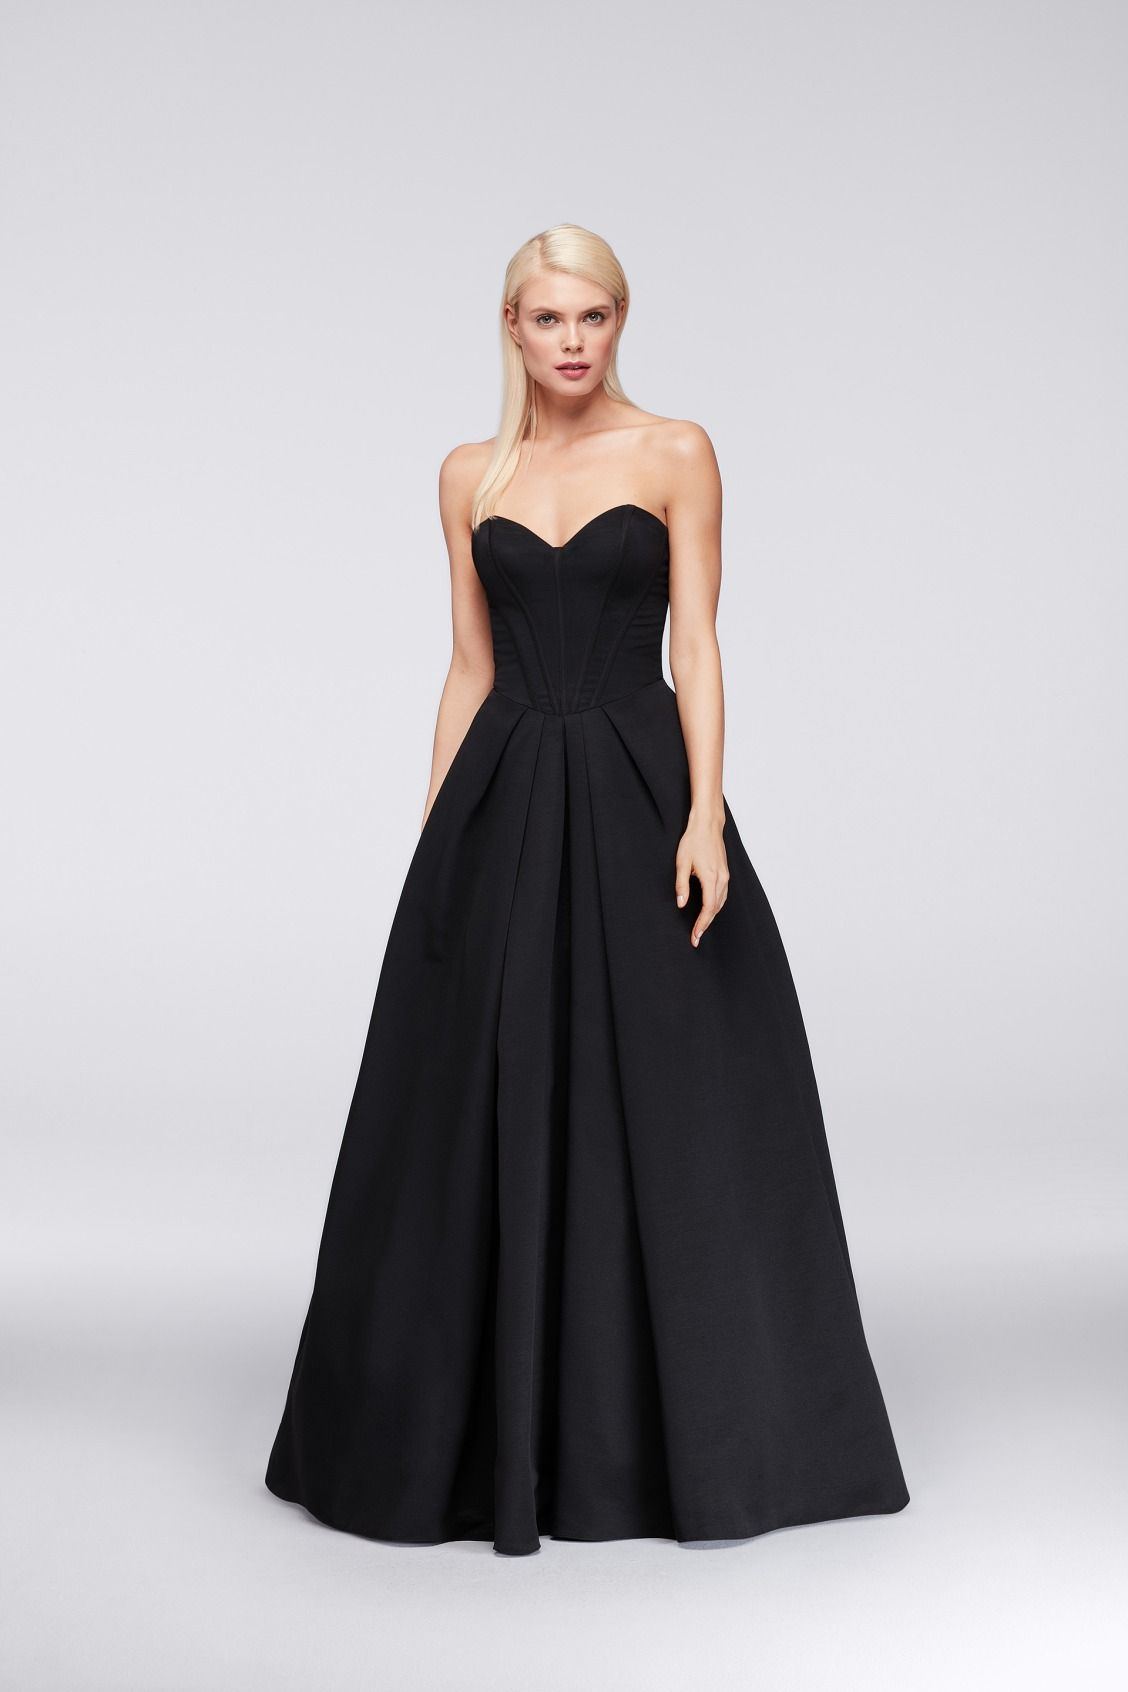 An Elegant Prom Dress Strapless Sweetheart Black Ball Gown With Corset Bodice By Truly Zac Posen A Gorgeous Gowns Strapless Prom Dresses Elegant Prom Dresses [ 1692 x 1128 Pixel ]